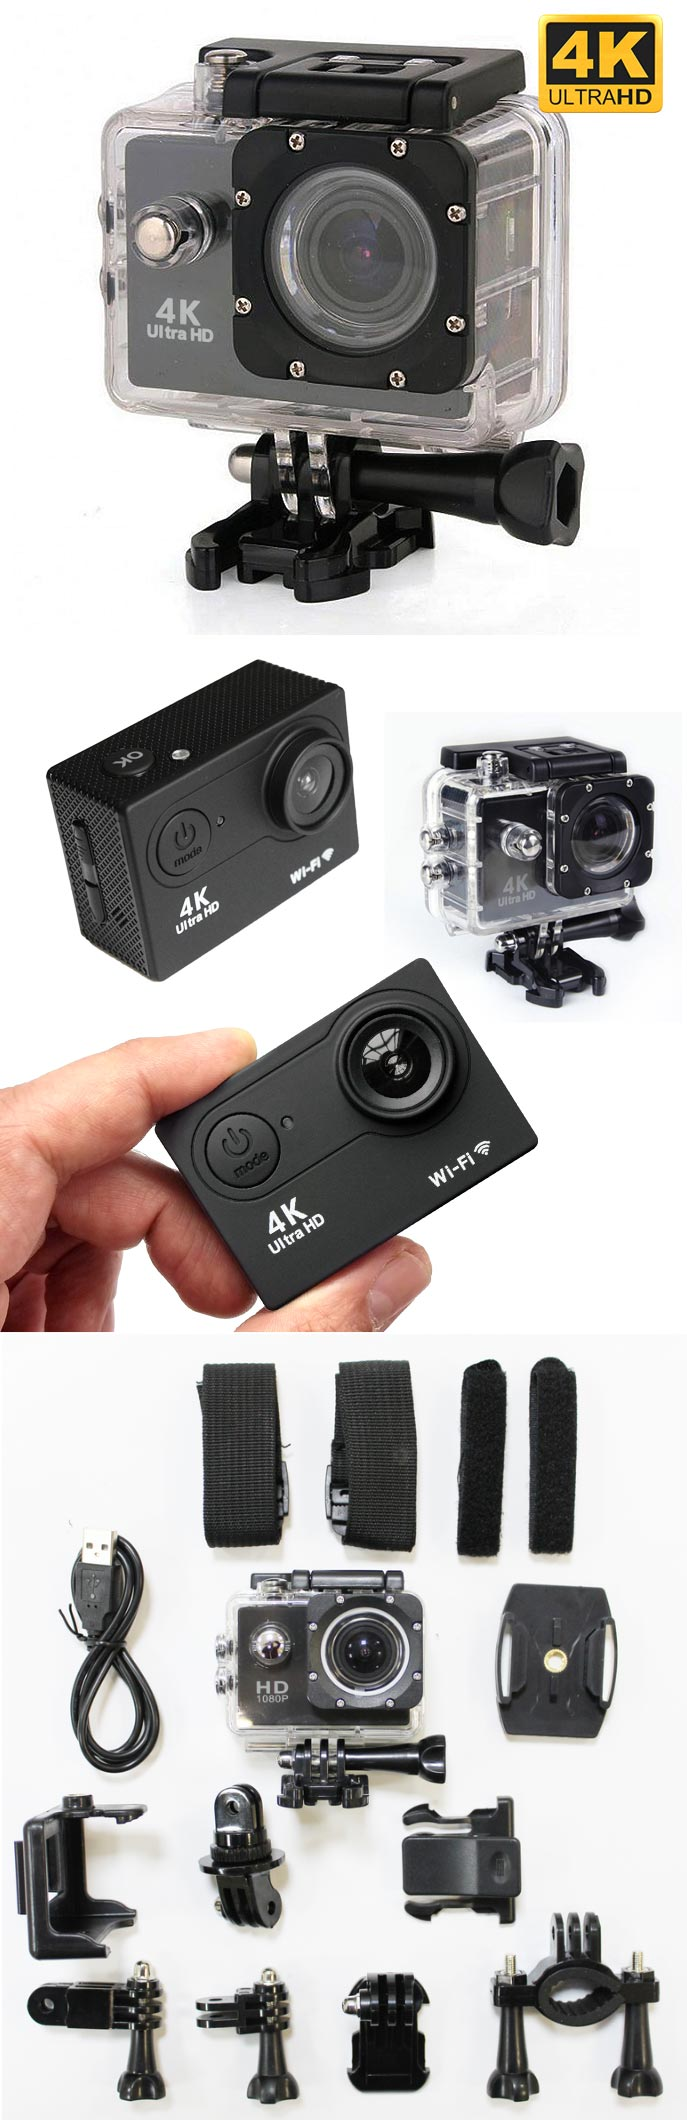 action sport camera ultra-hd 4k impermeabile